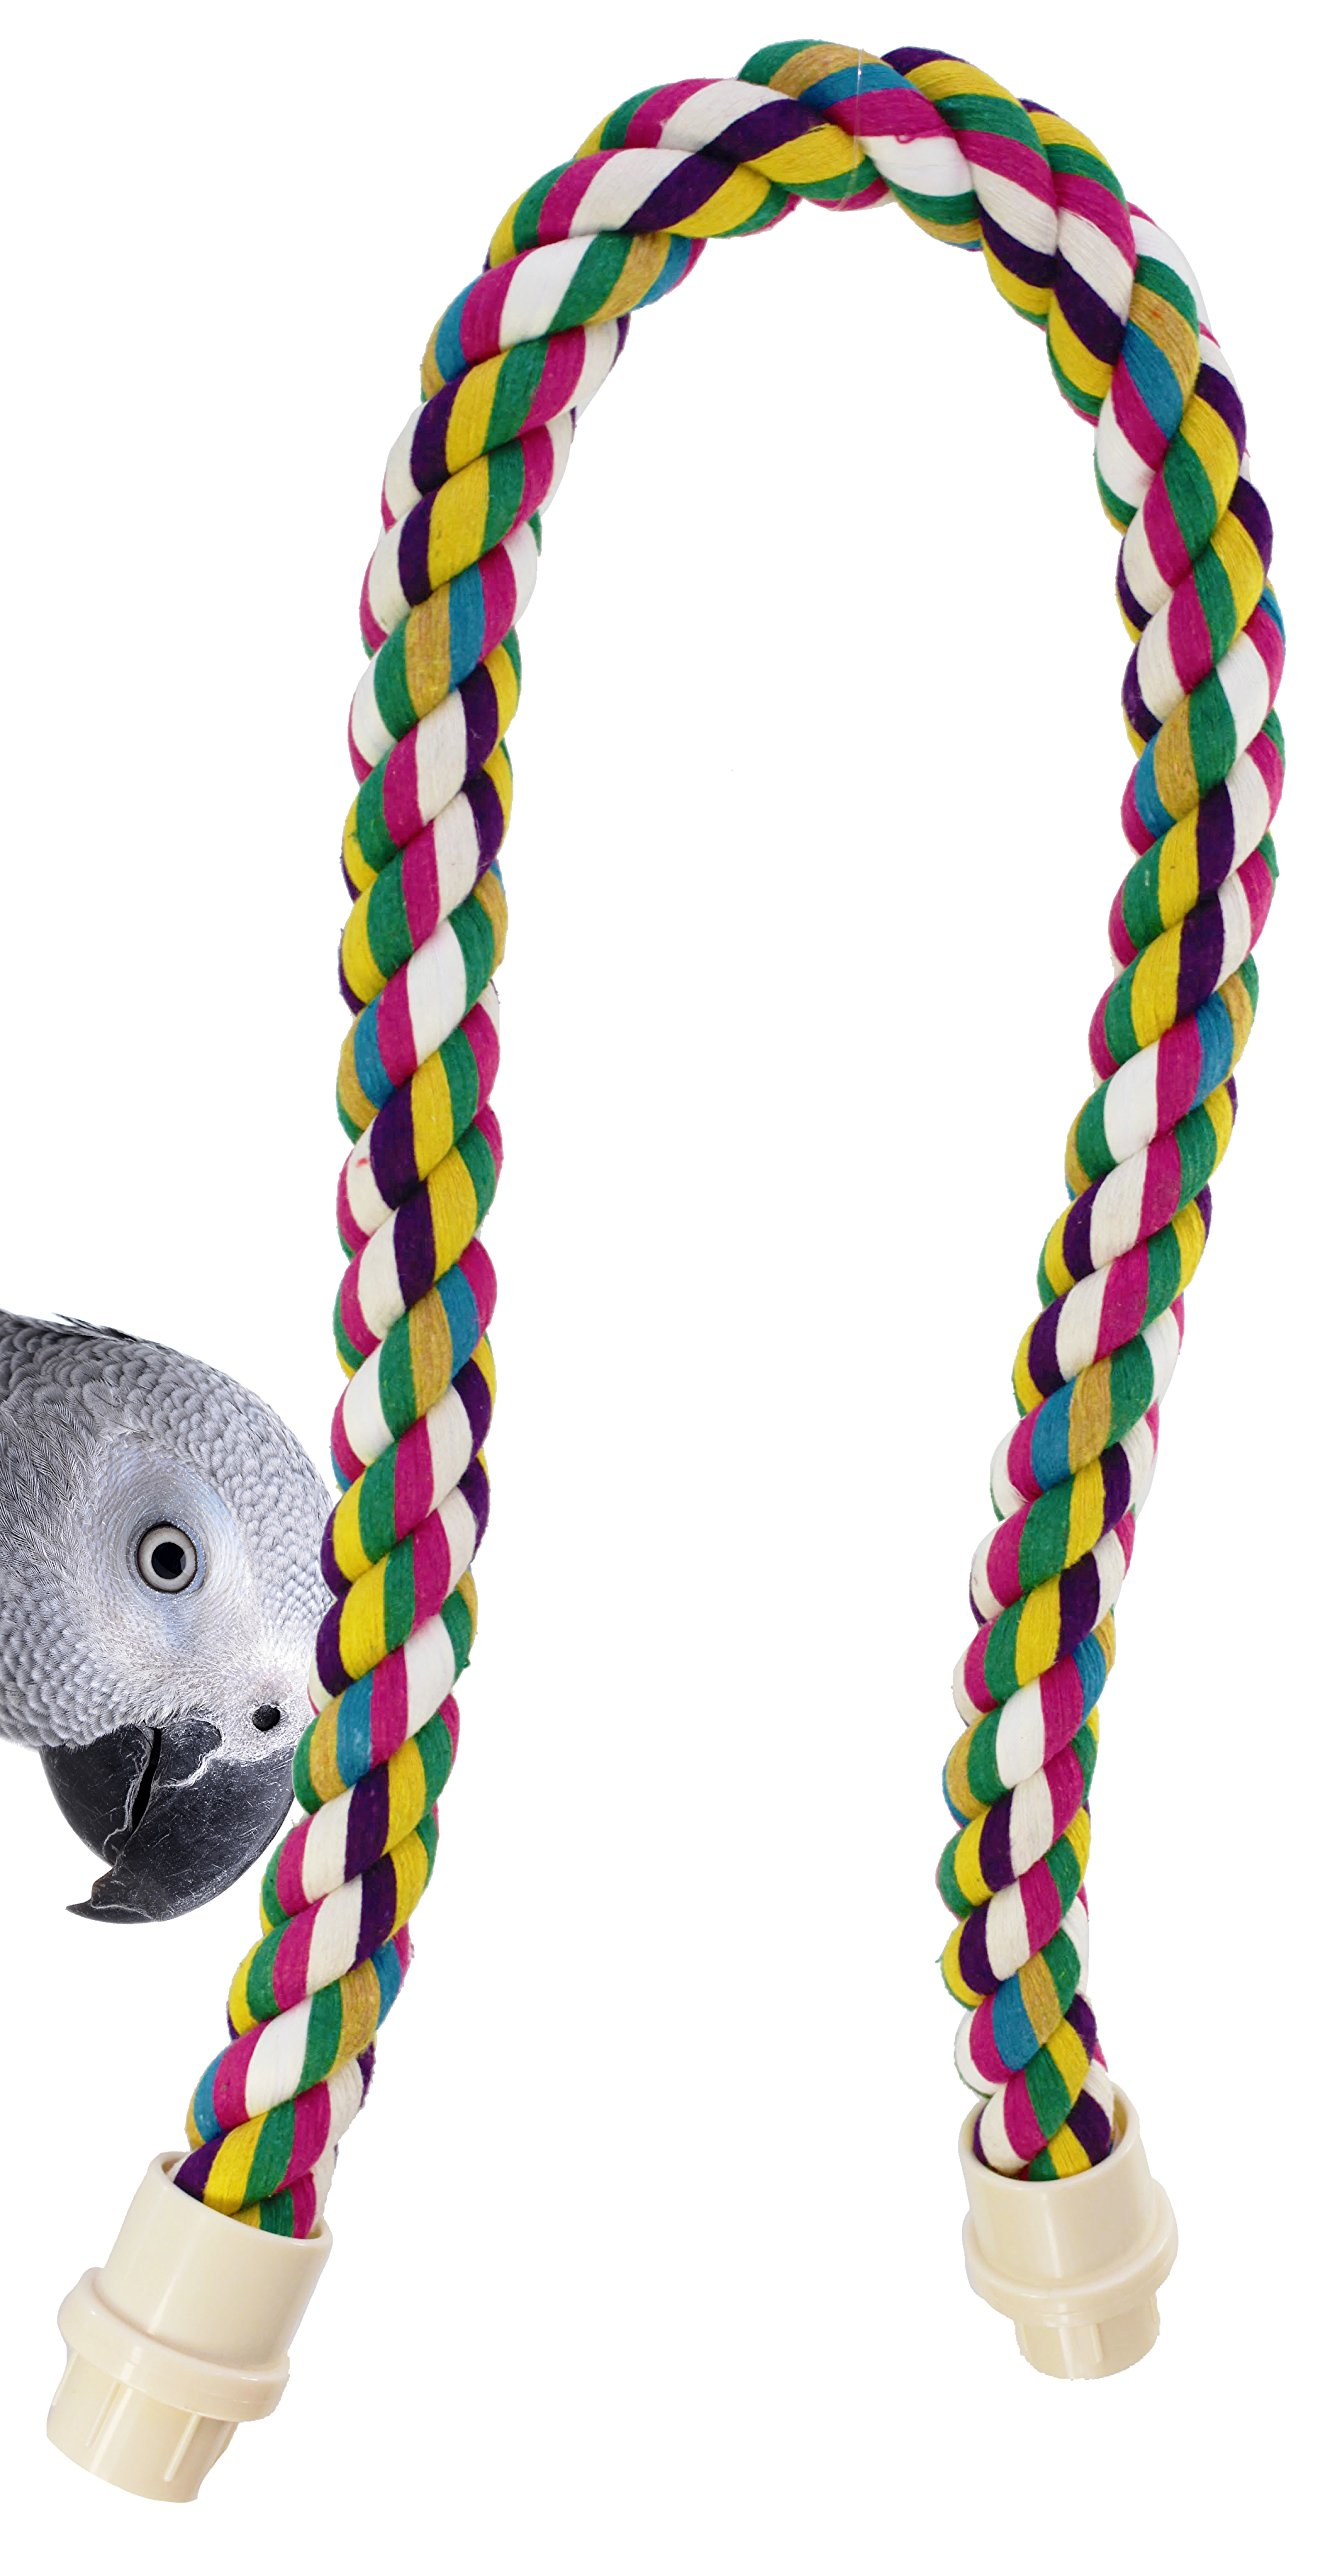 Bonka Bird Toys 1675 Medium Rope Perch Parrot cage pet Toy Large Accessories Conure Amazon African Grey Cockatoo Macaw Colorful Bendable Exercise Balance Training by Bonka Bird Toys